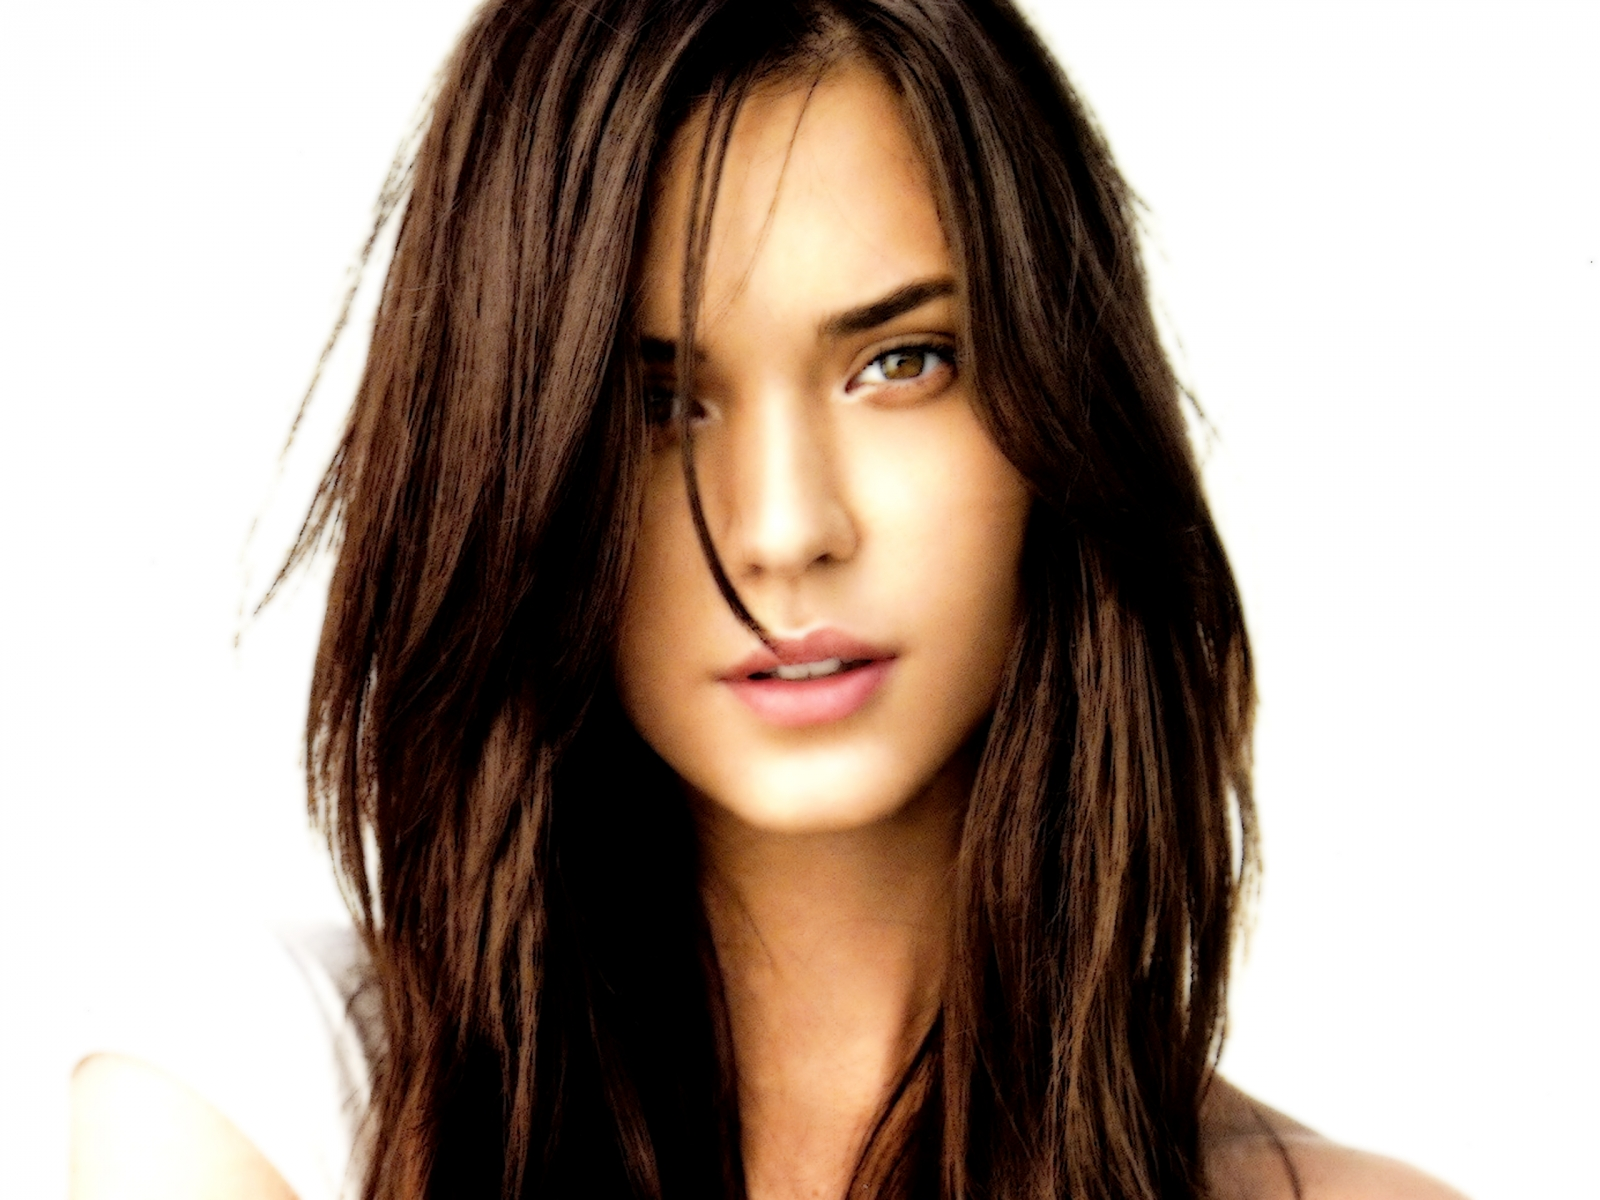 1600x1200 - Odette Annable Wallpapers 20